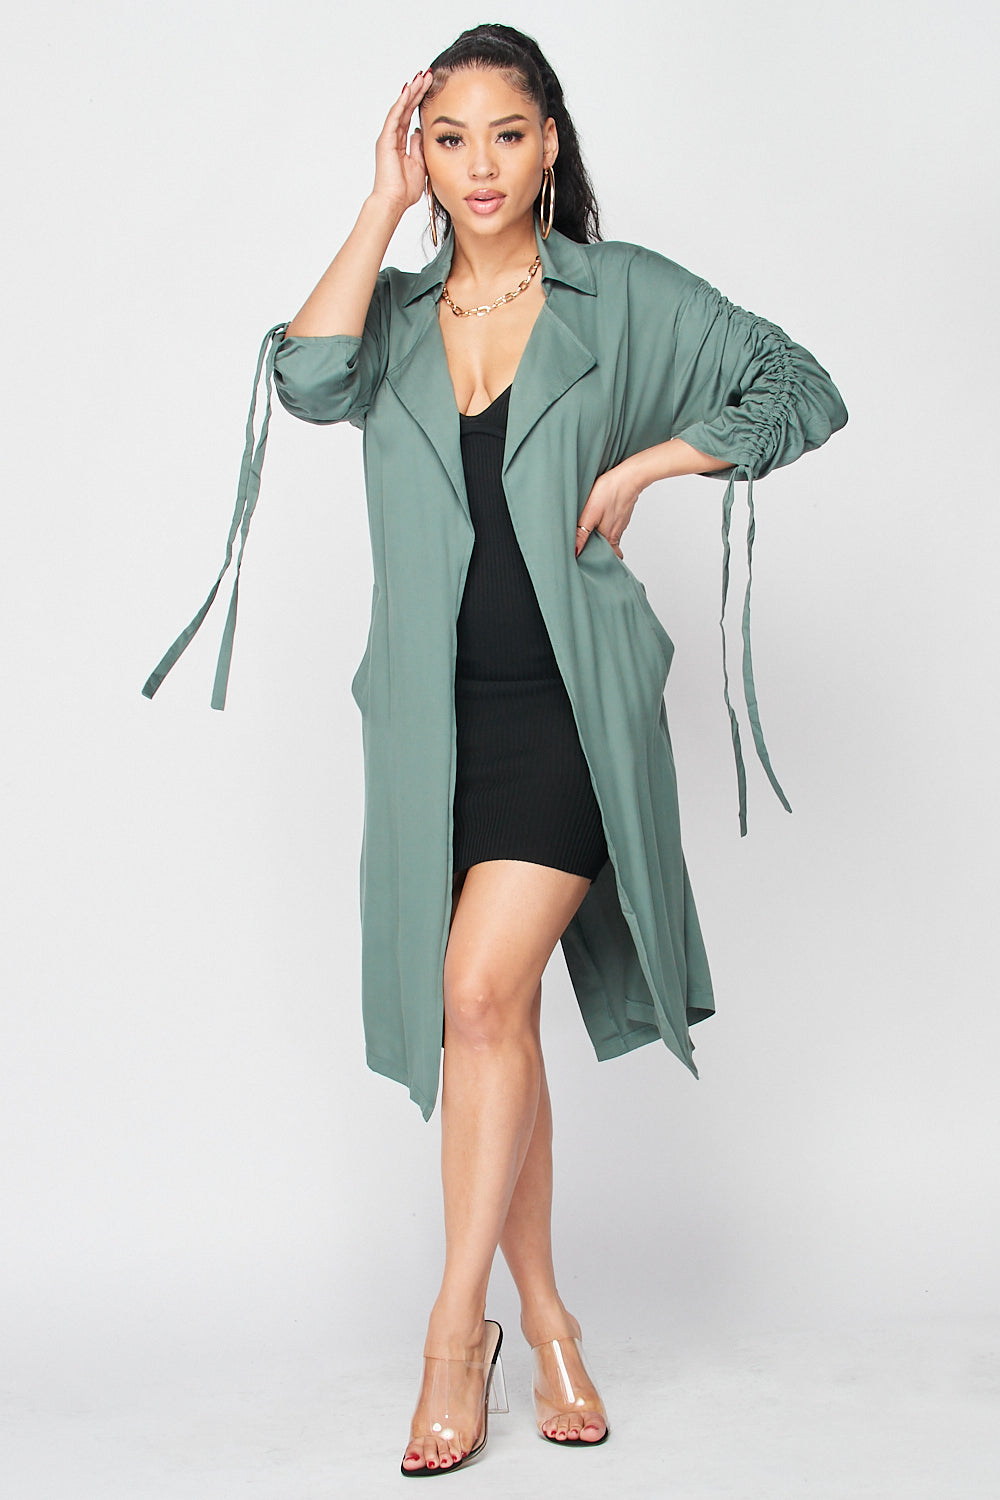 Belted French Jacket with Ruched Sleeved with Pockets in Hunter Green - Fashion House USA